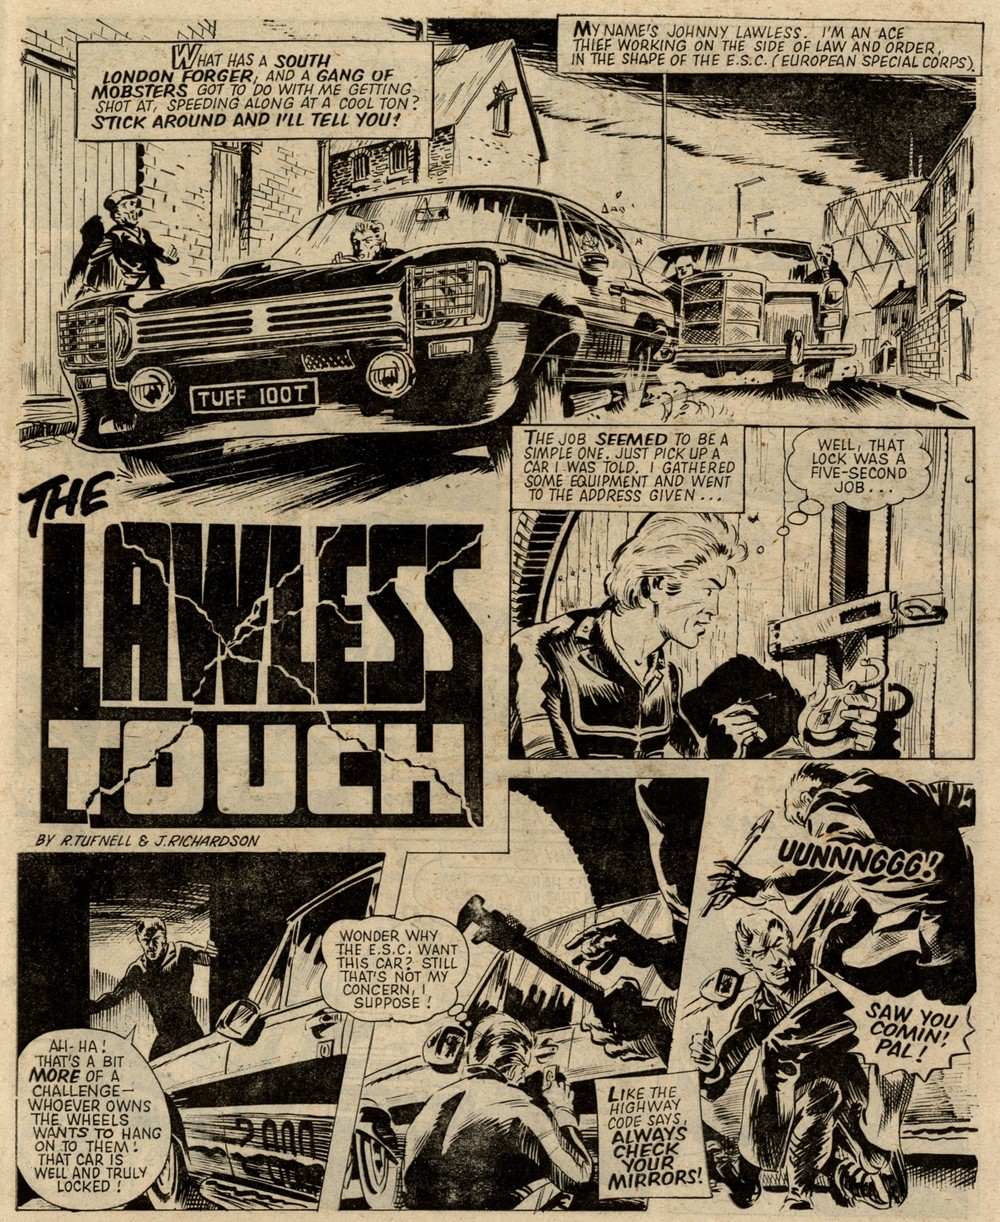 The Lawless Touch: R Tufnell (writer), John Richardson (artist)